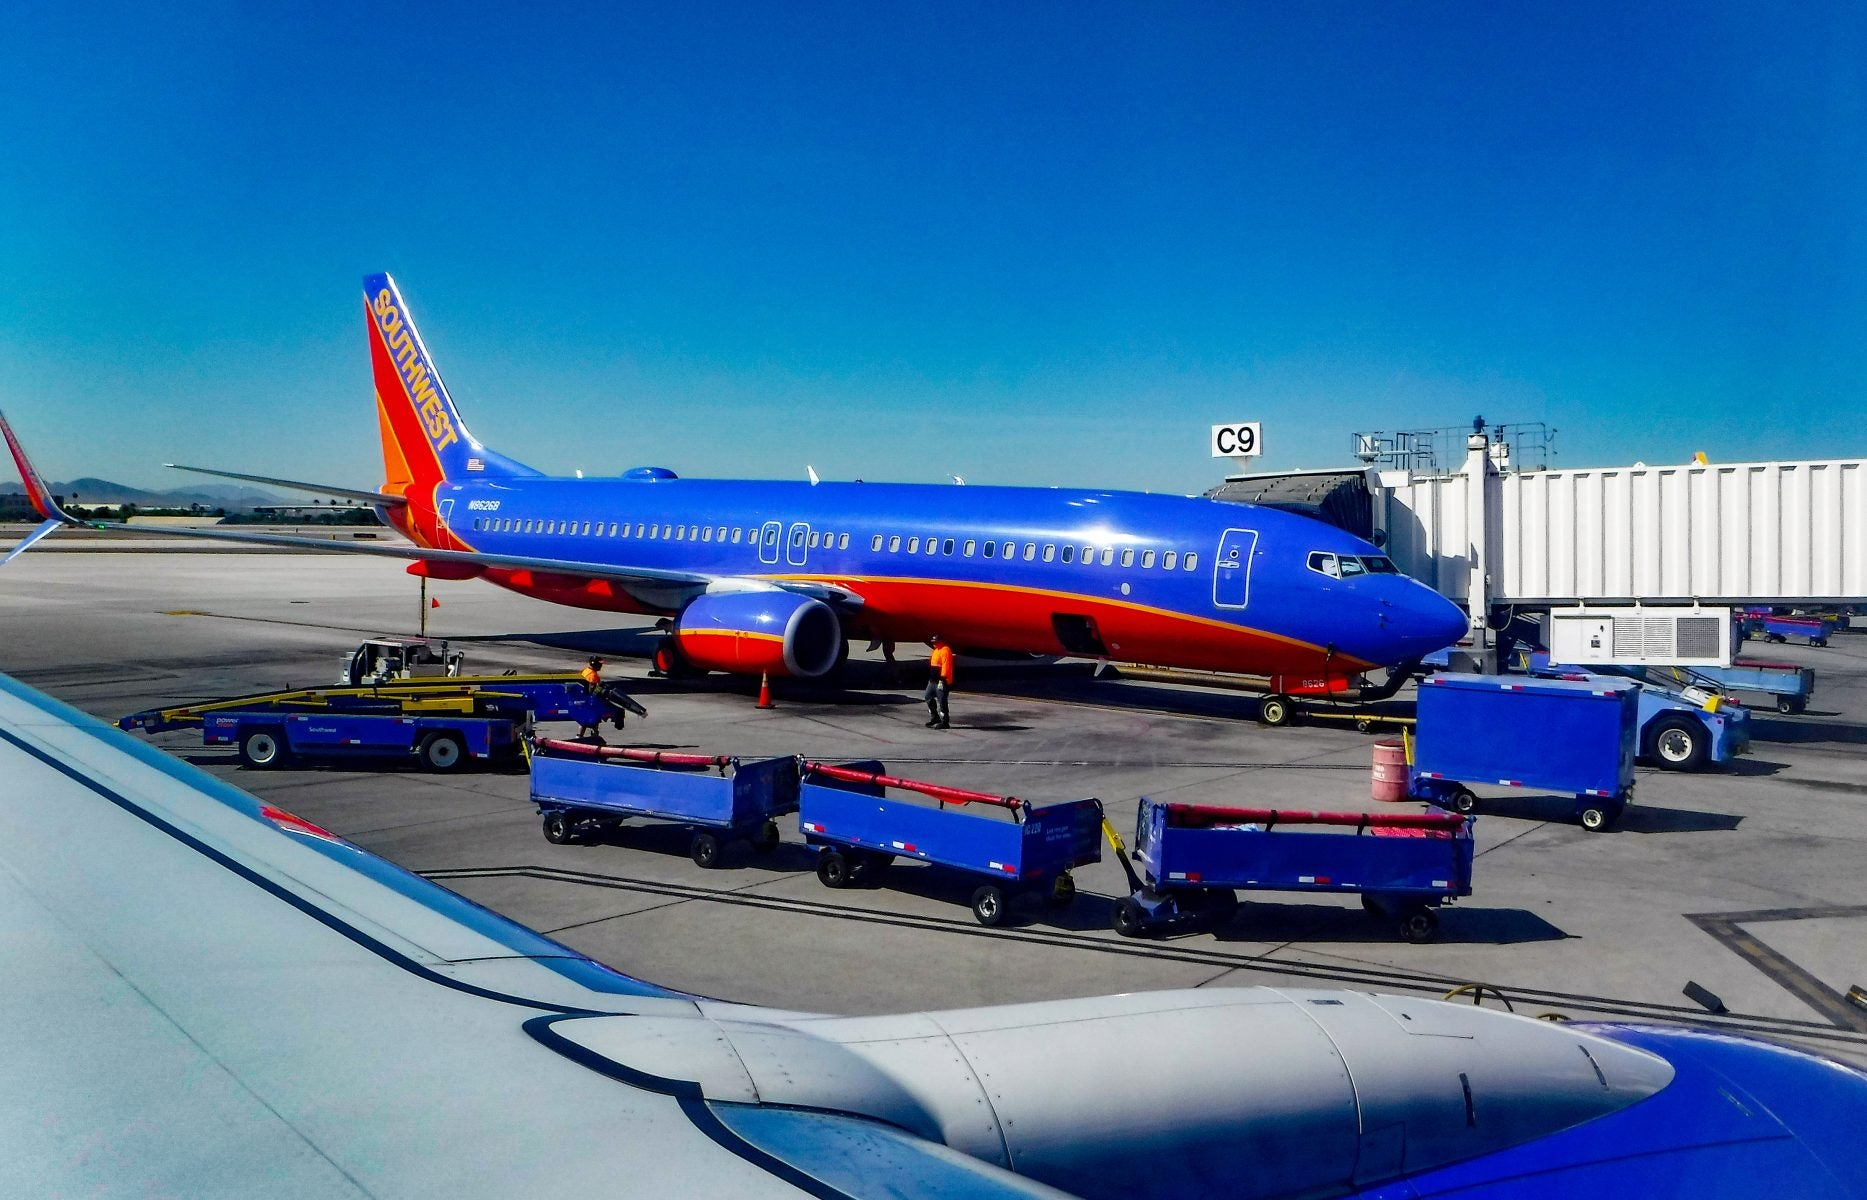 Southwest airplane on tarmac